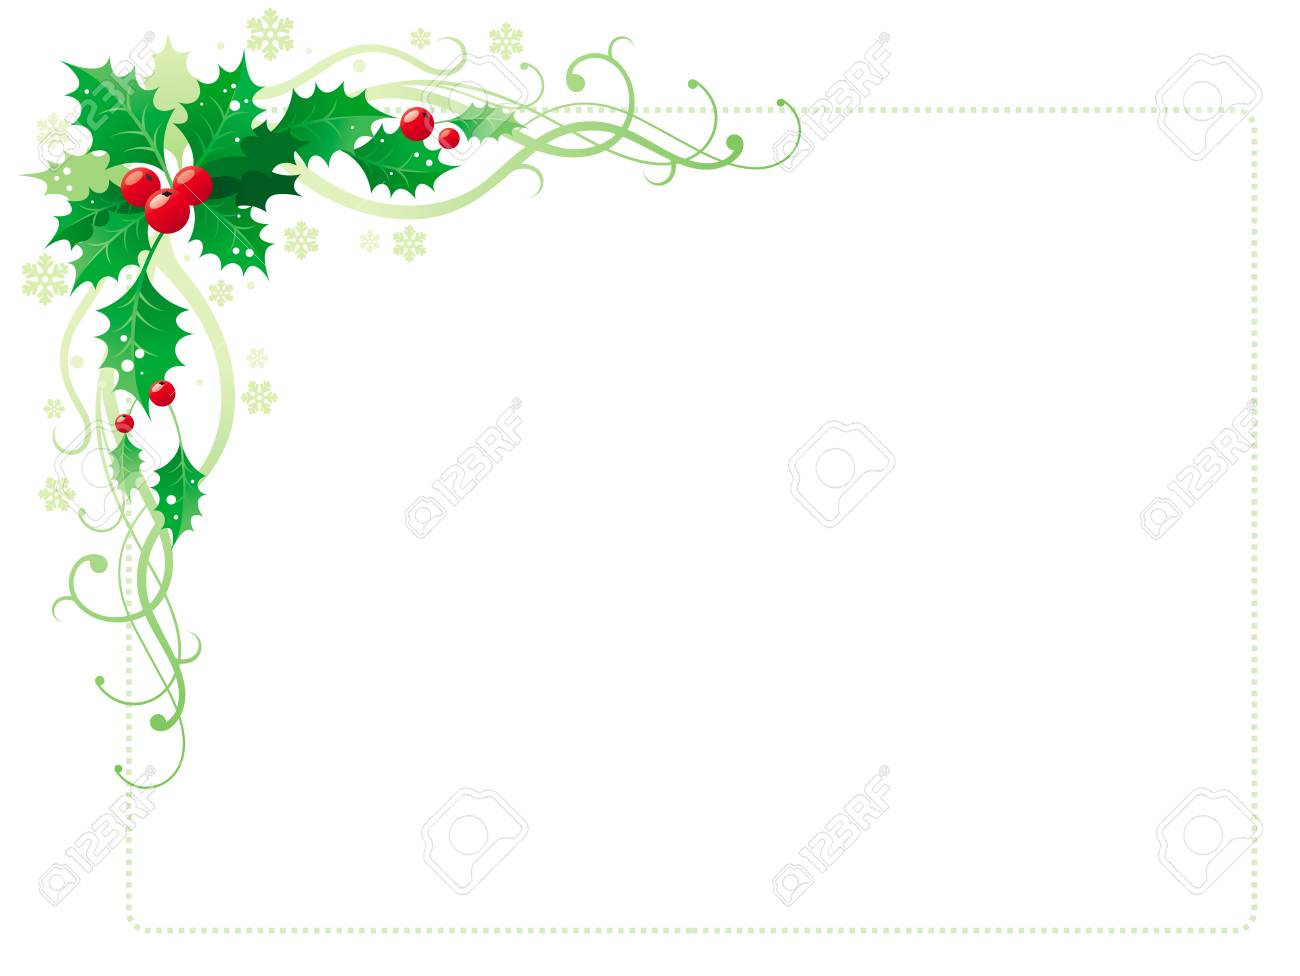 merry christmas and happy new year corner horizontal border banner with holly berry leafs isolated